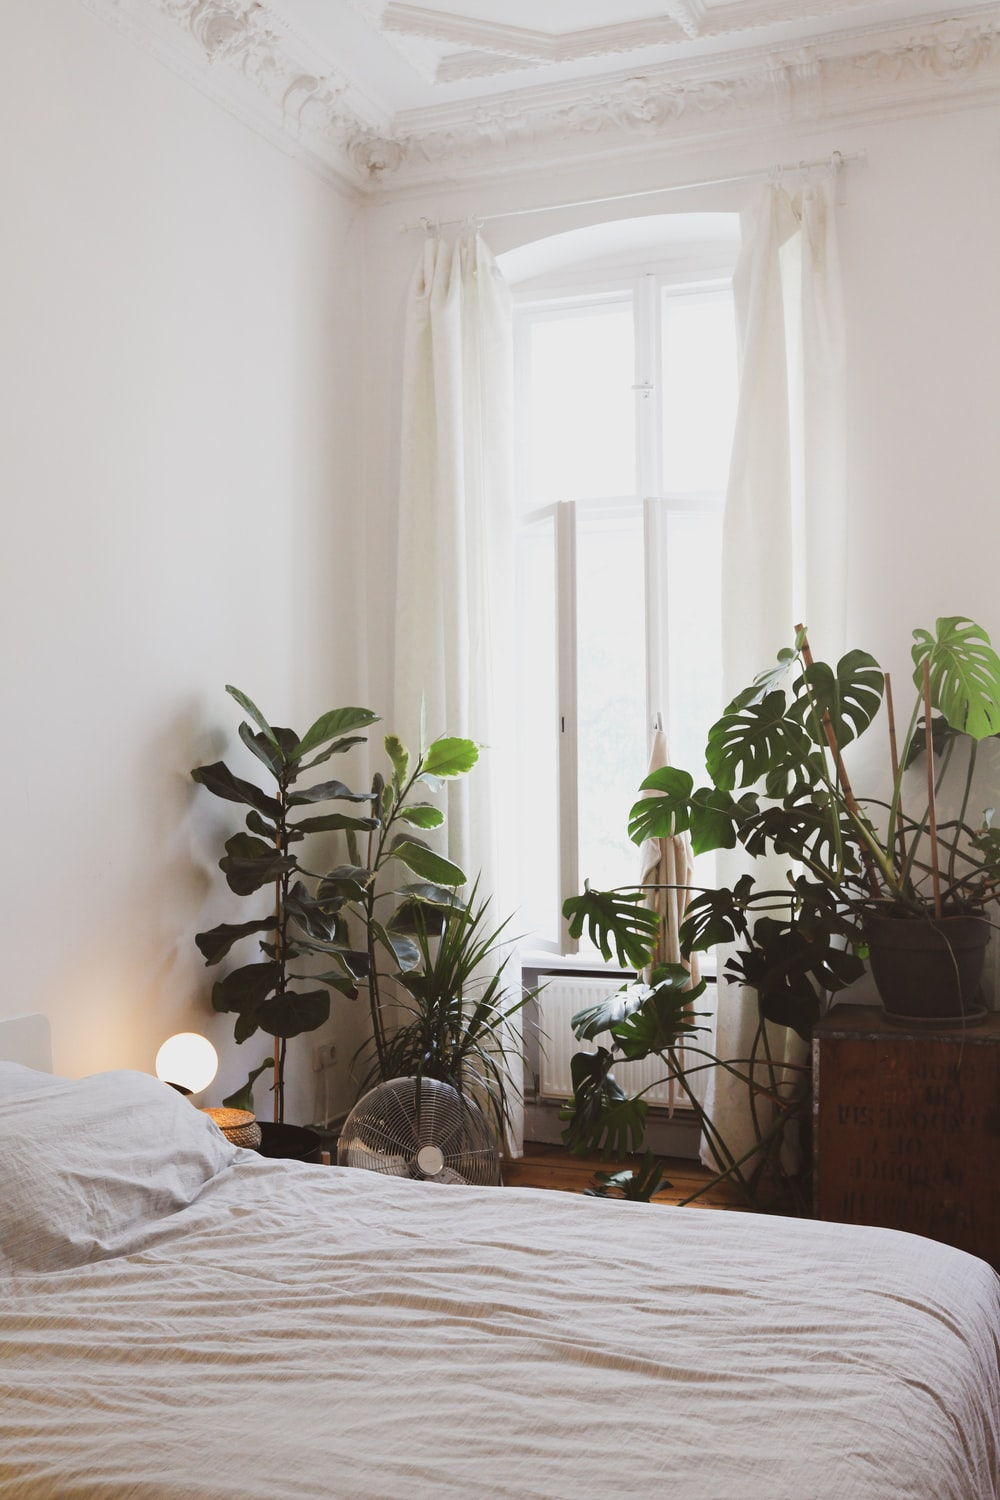 green potted plant near bed